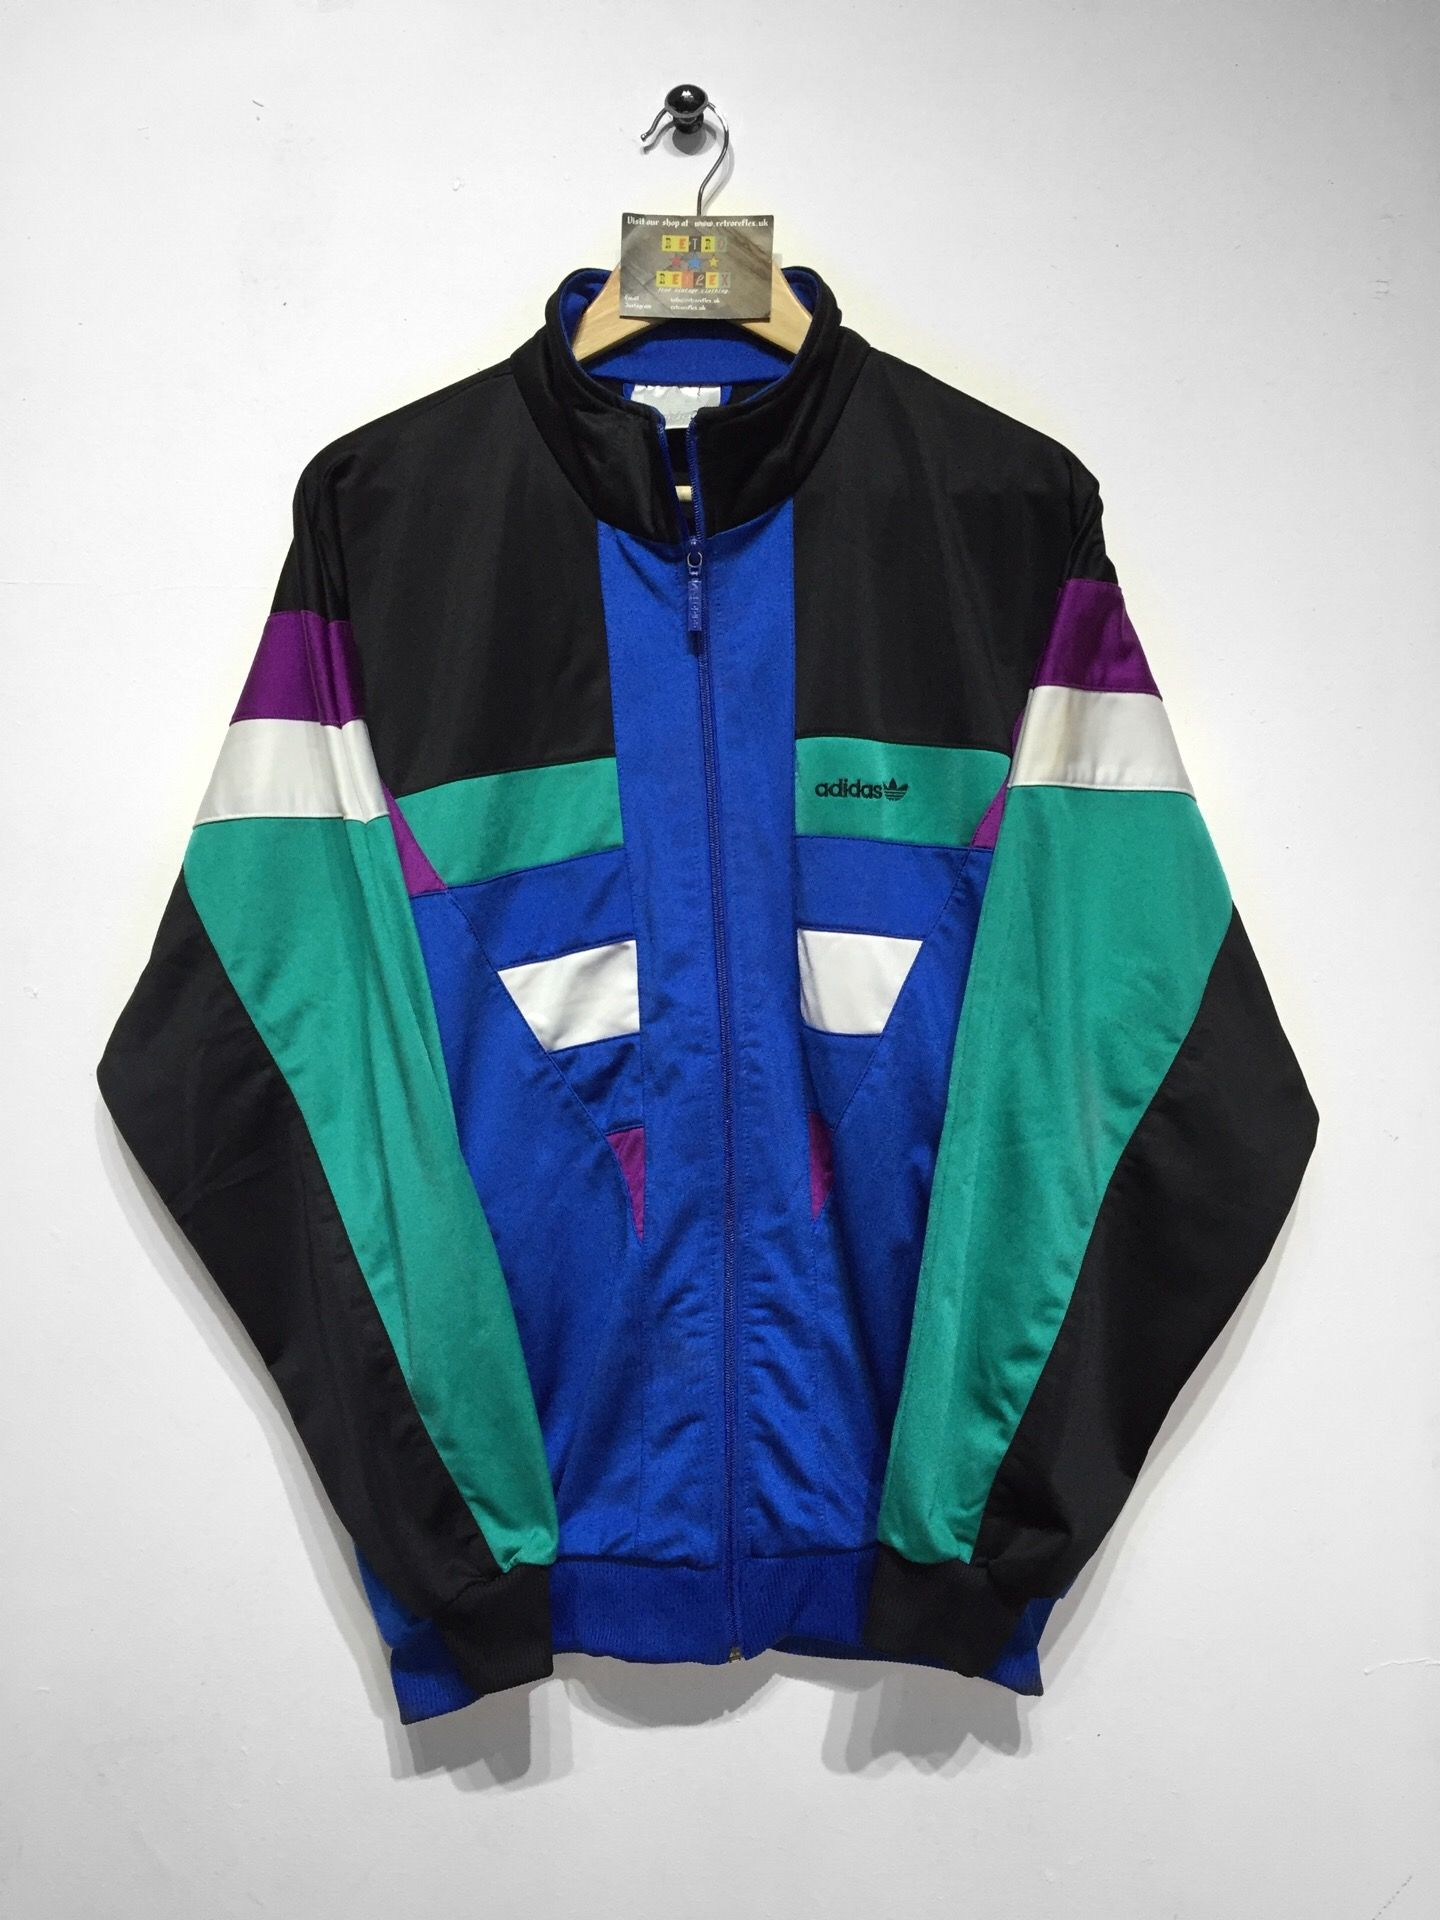 Vintage Adidas 80's Made In WEST GERMANY Jacket Jumper Top